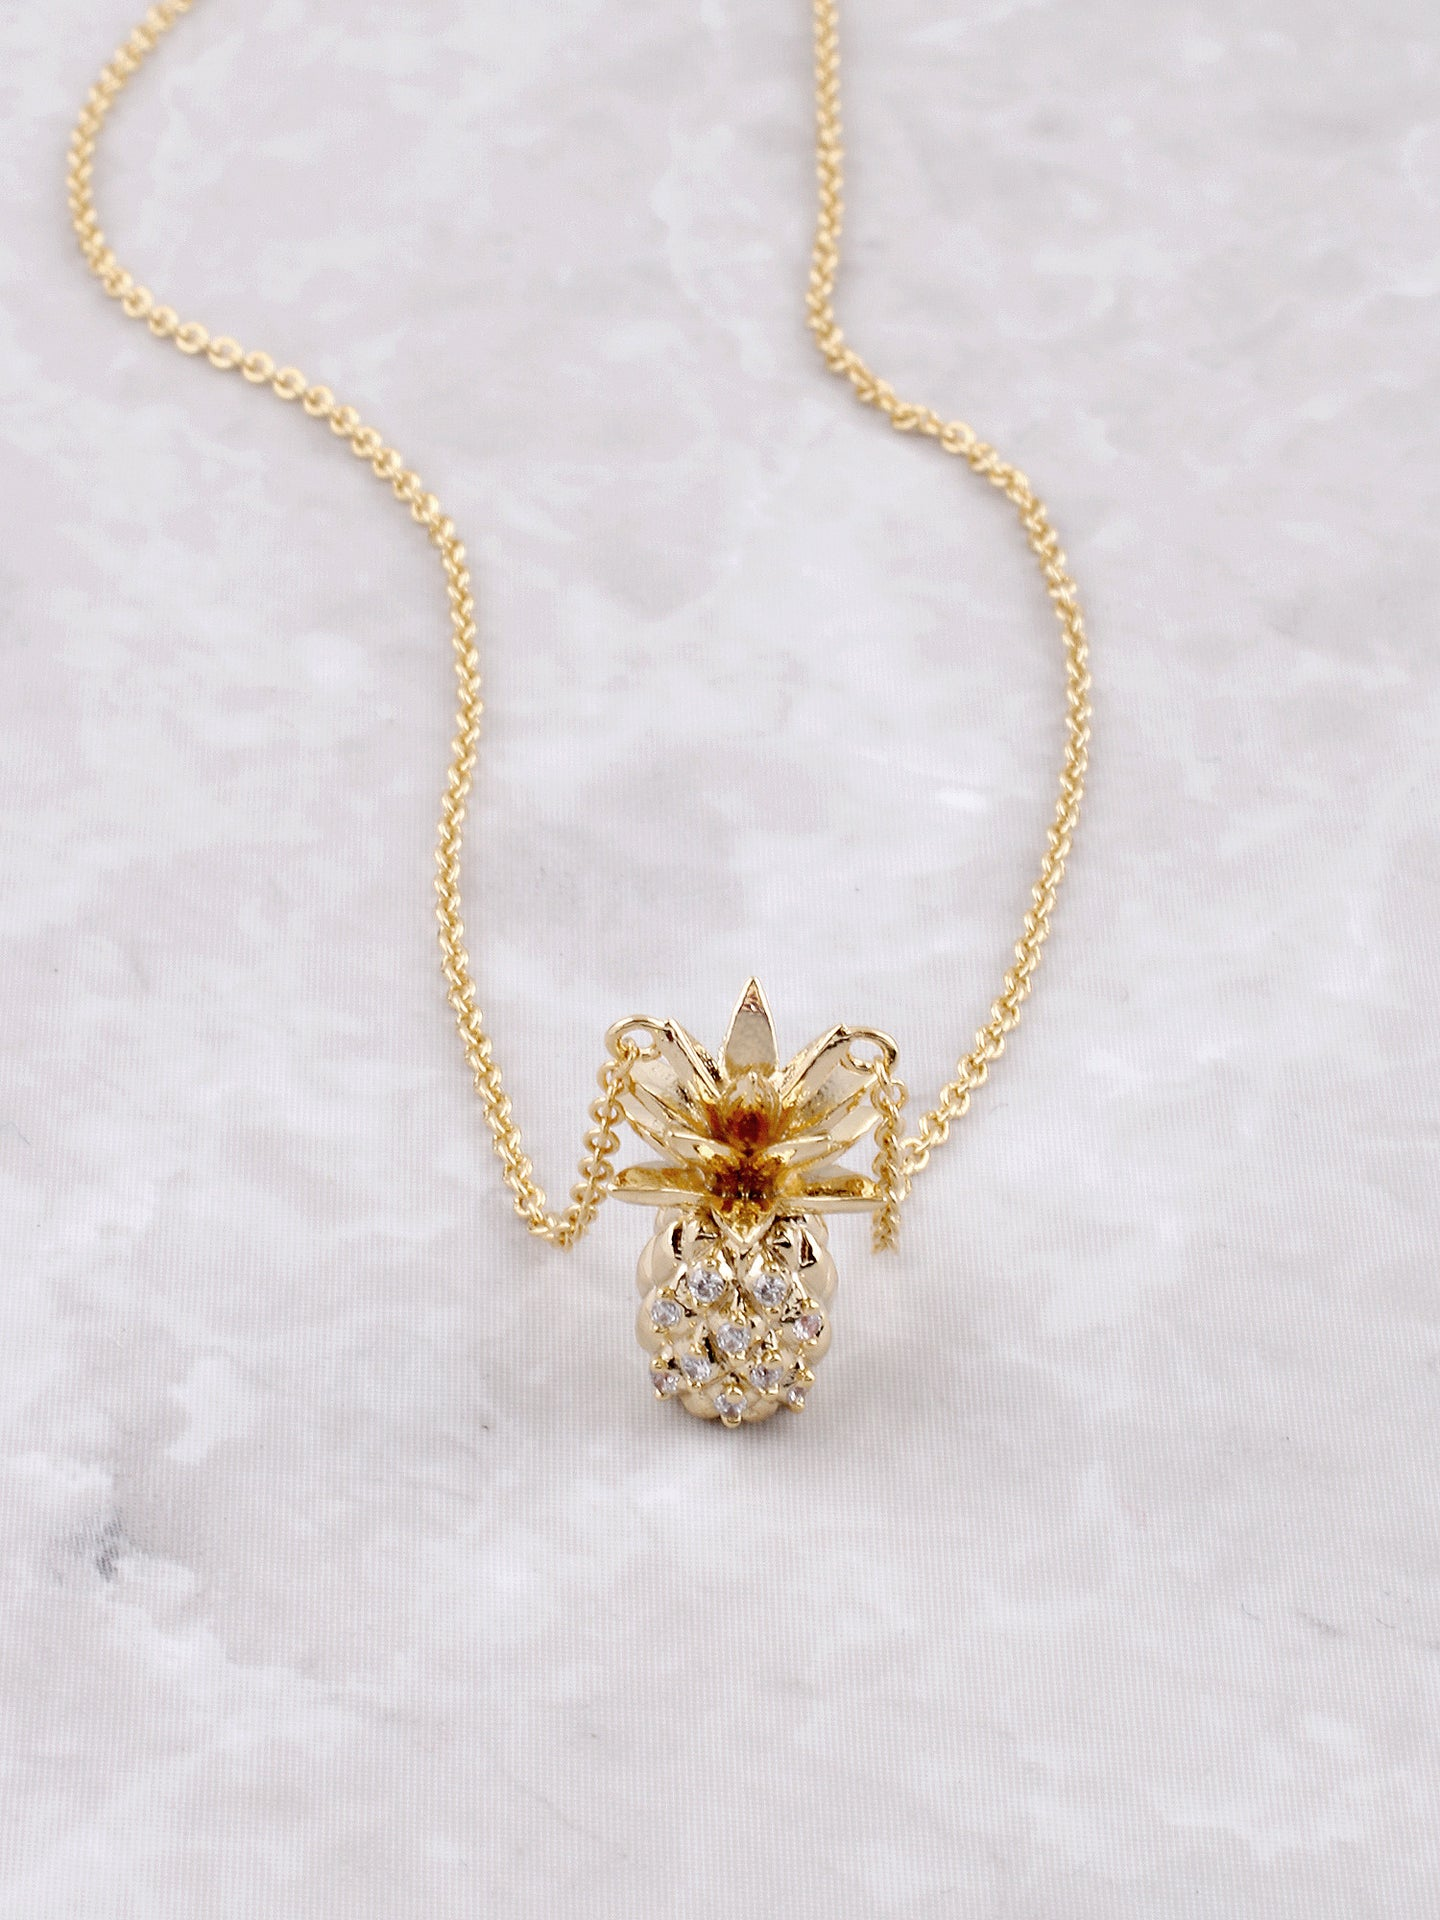 Pave Pineapple Pendant Necklace Anarchy Street Gold